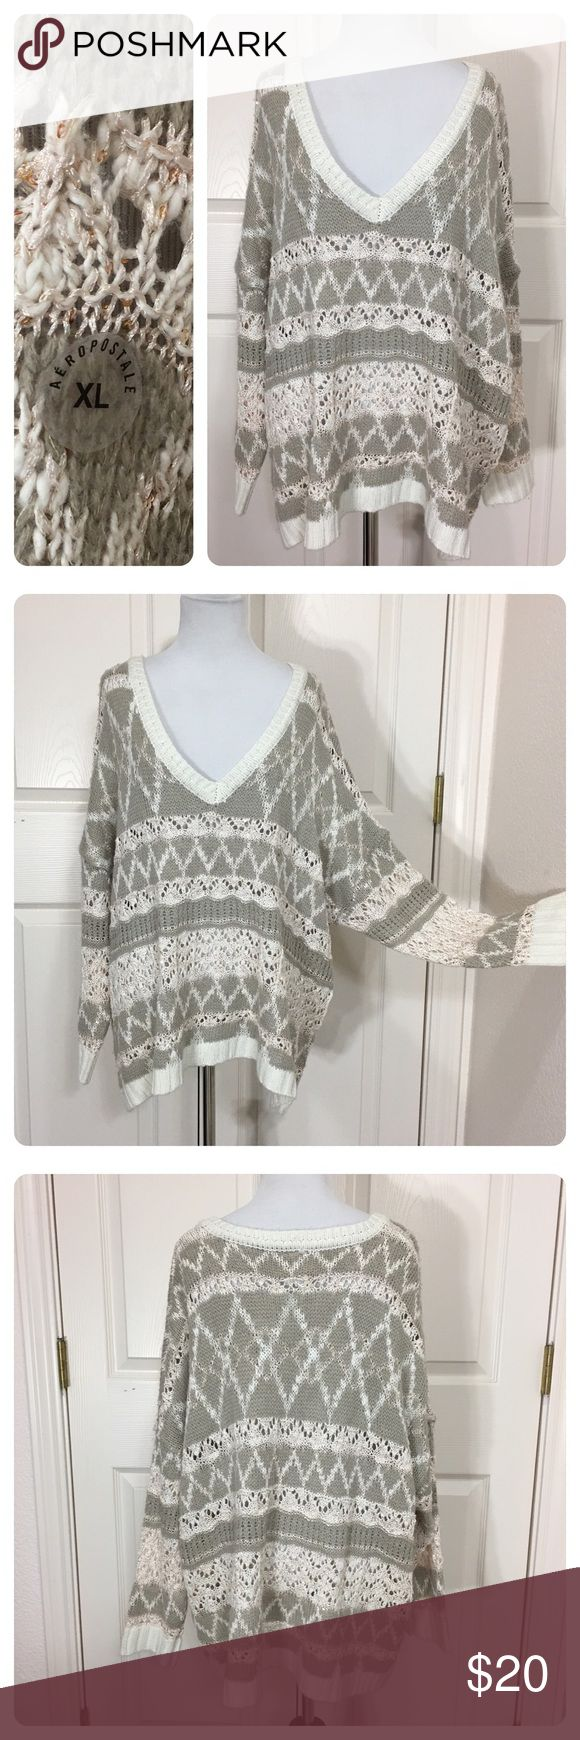 NWOT! Aeropostale open weave sweater New without tags. Size sticker still on. Pretty open weave cream, taupe with a little metallic threading throughout. Aeropostale Sweaters